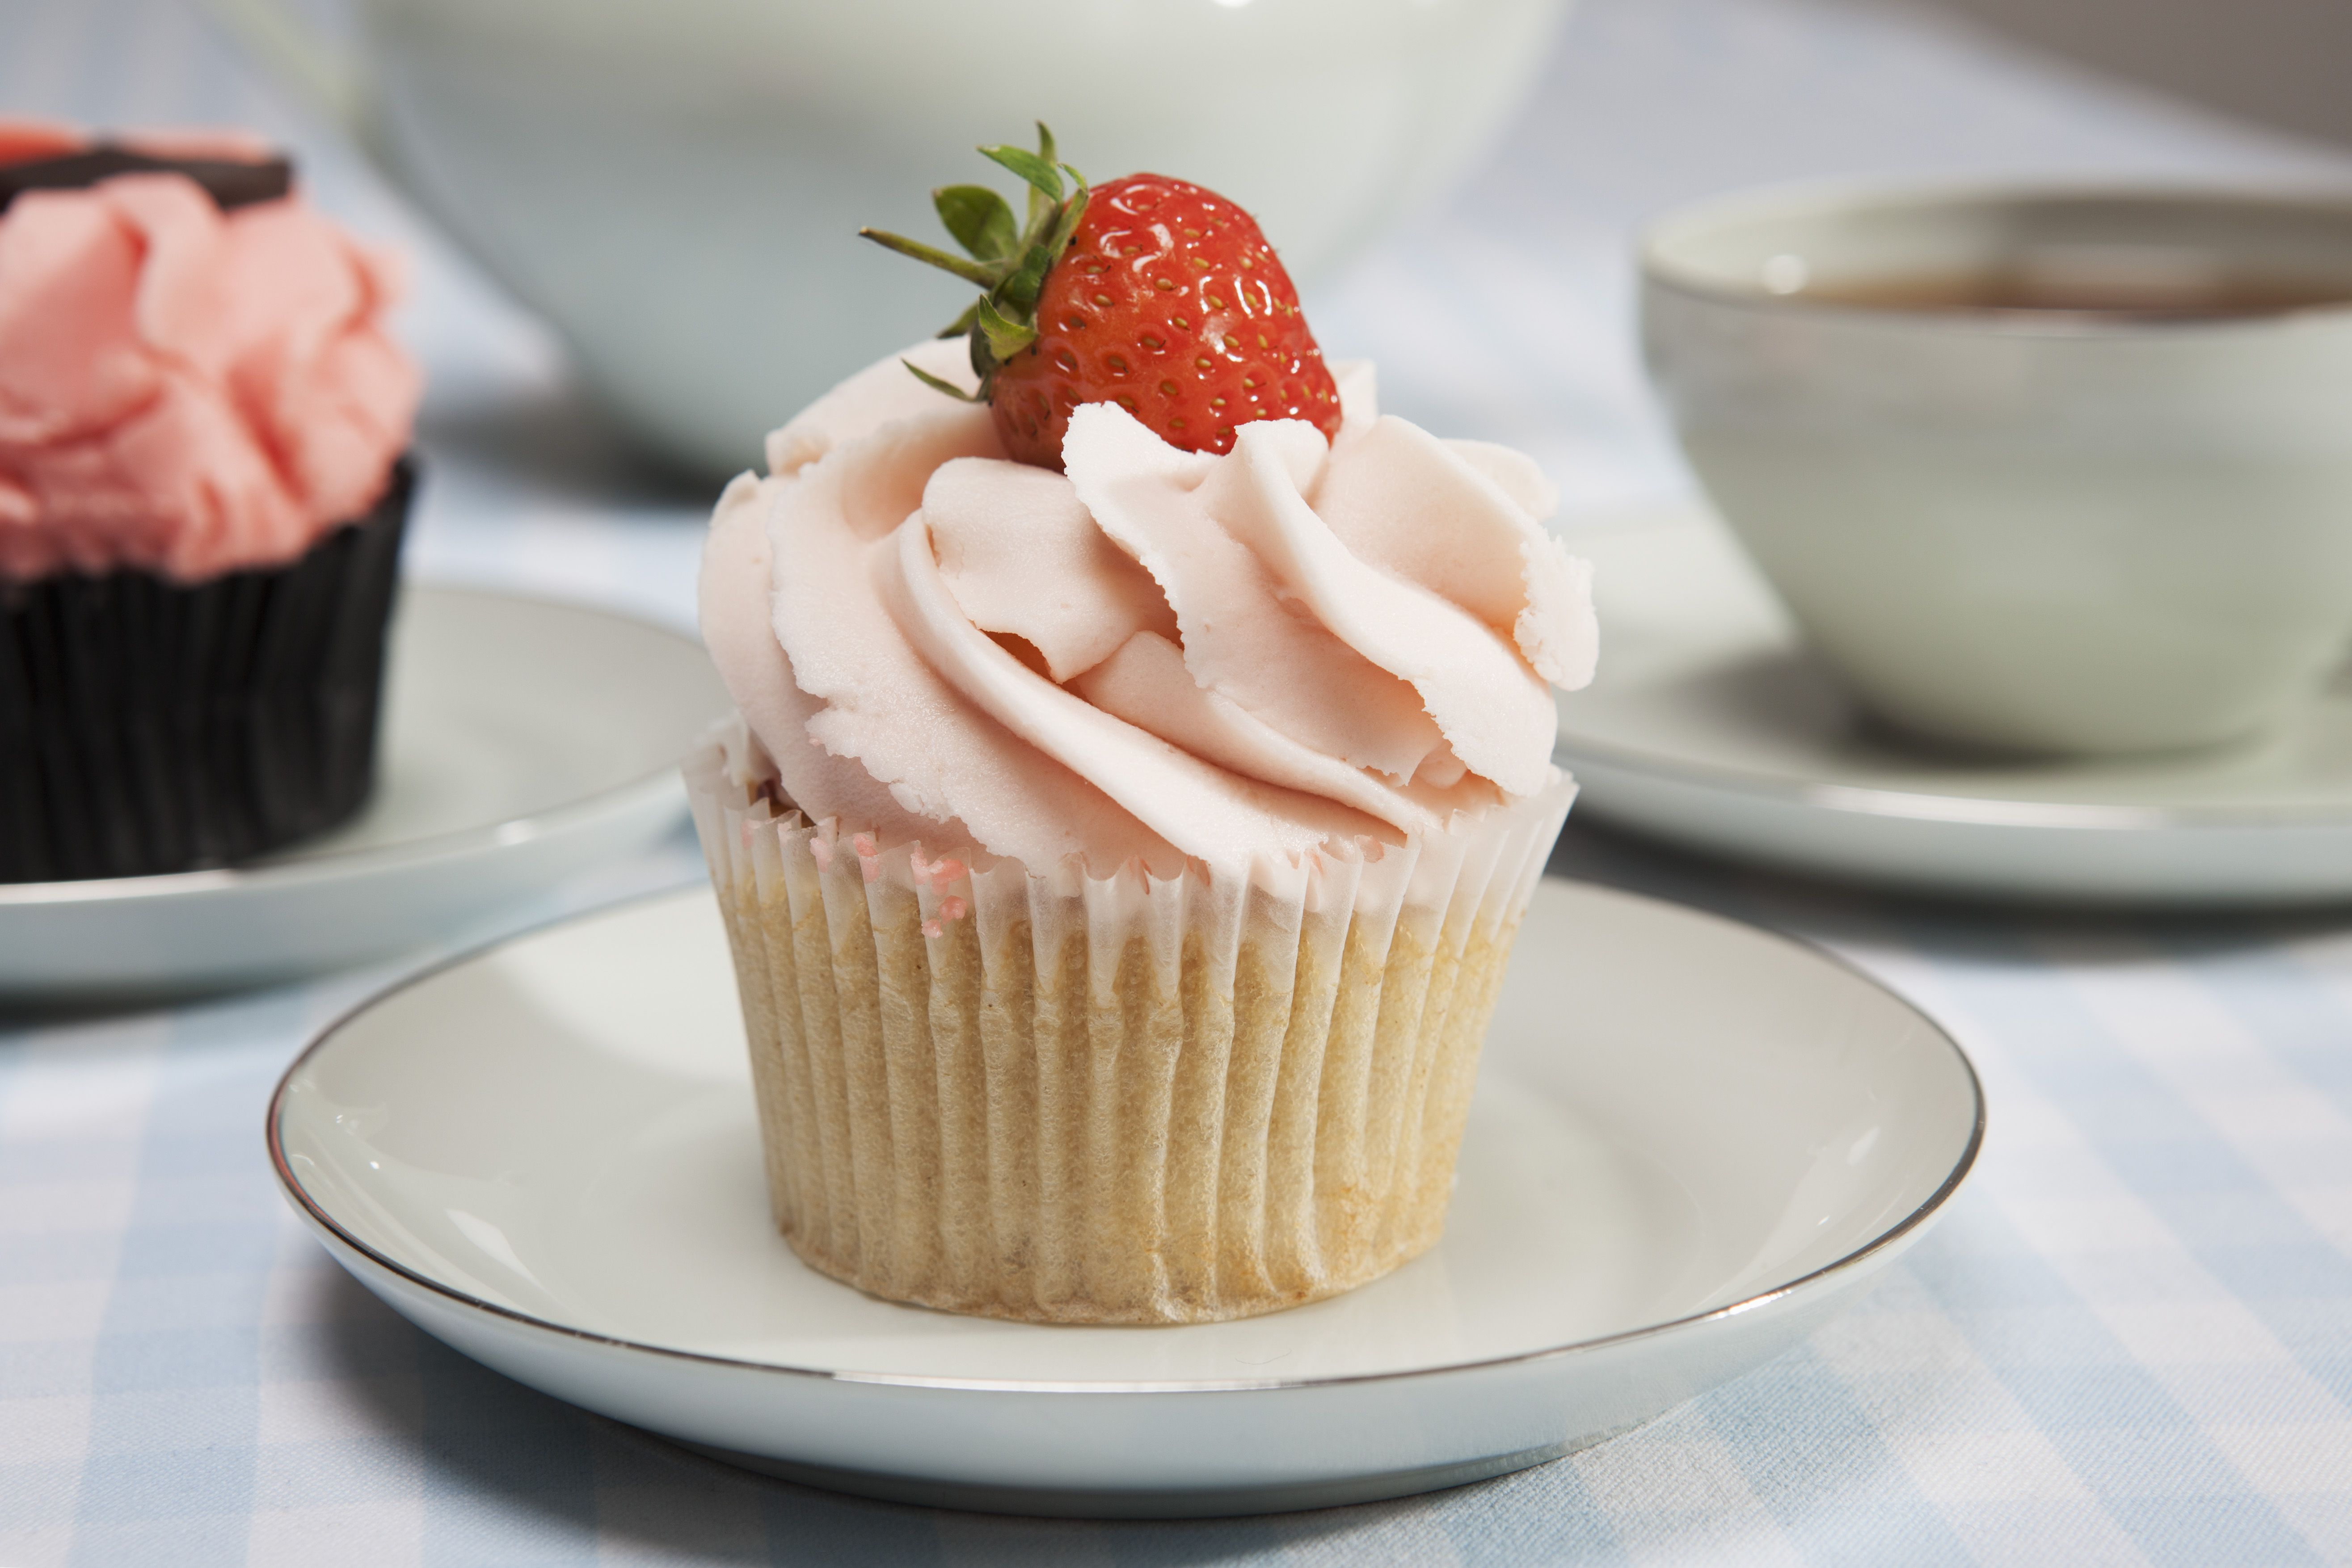 Close-up of cupcake with strawberry